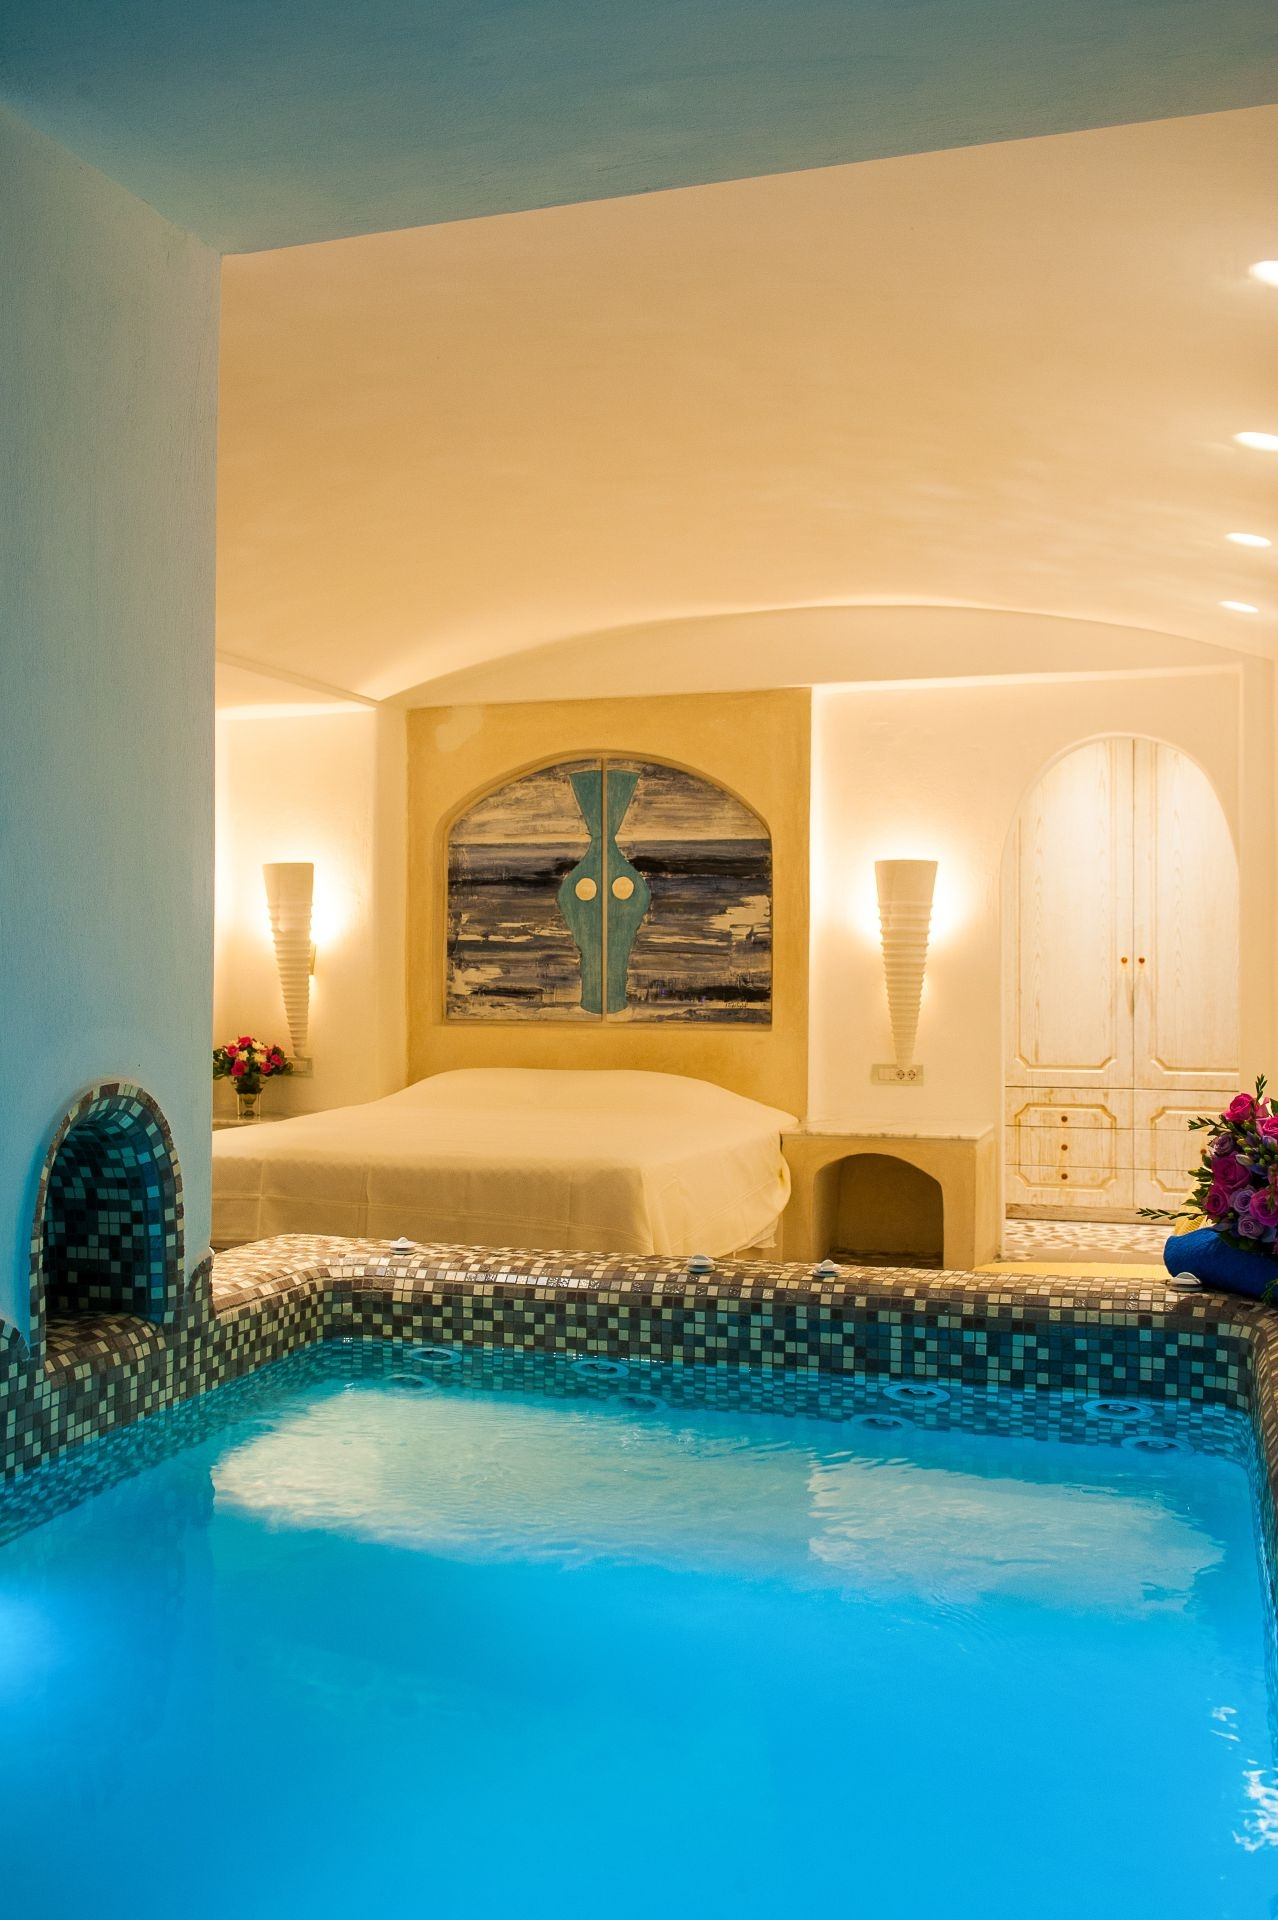 Jacuzzi Pool Hotel Room Luxury Suites With Private Infinity Pool In Santorini